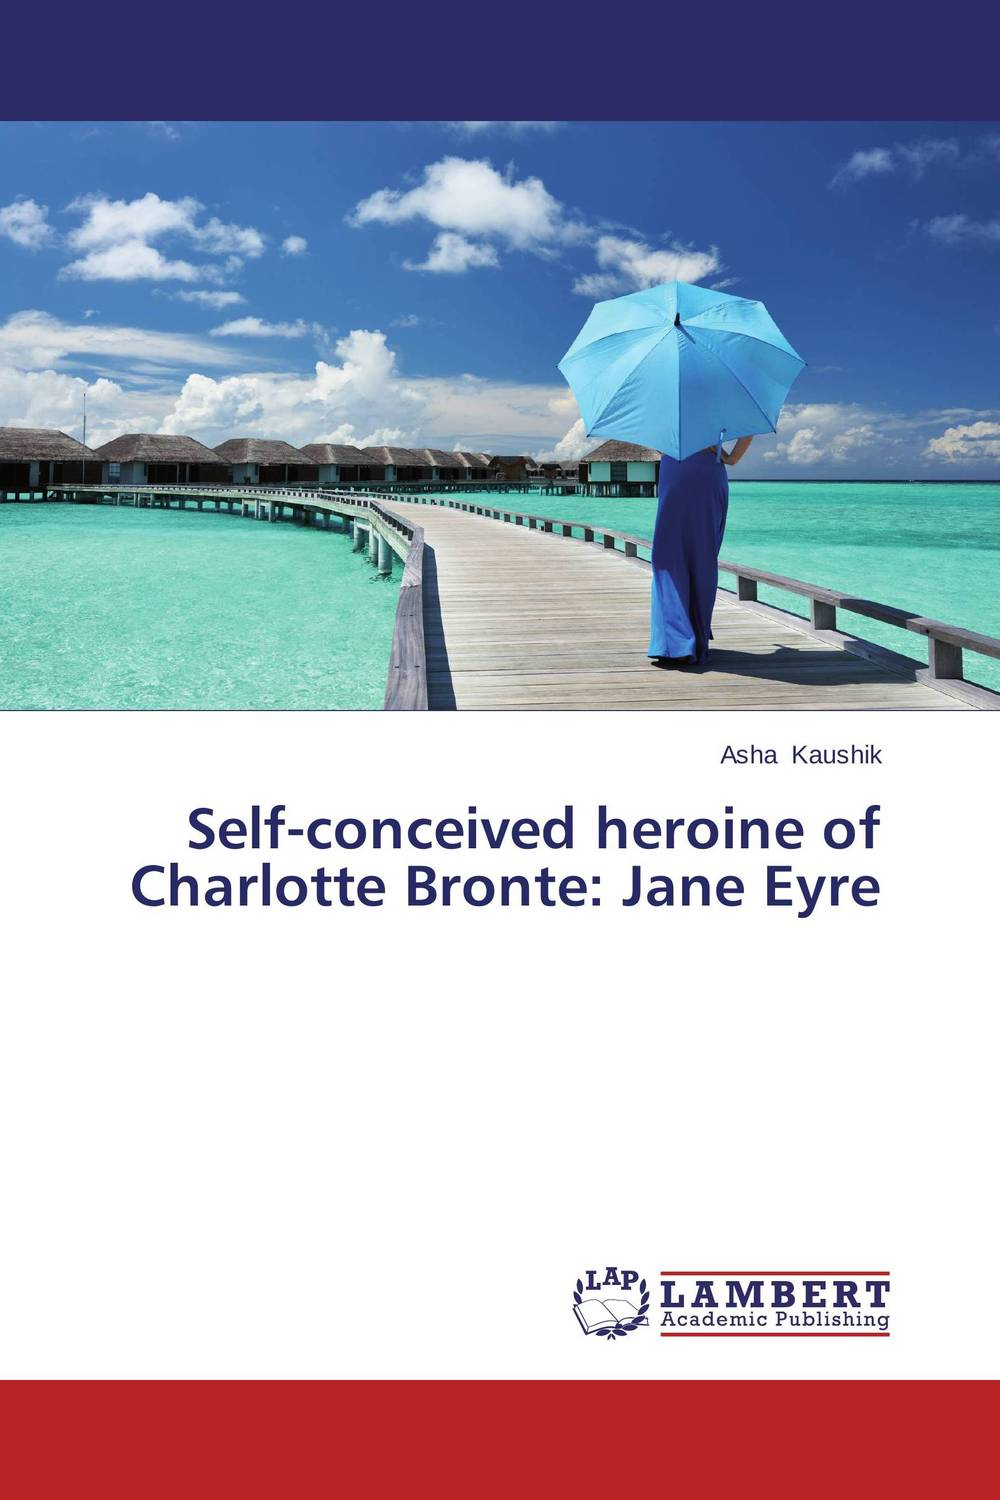 Self-conceived heroine of Charlotte Bronte: Jane Eyre the bronte sisters three novels jane eyre wuthering heights and agnes grey